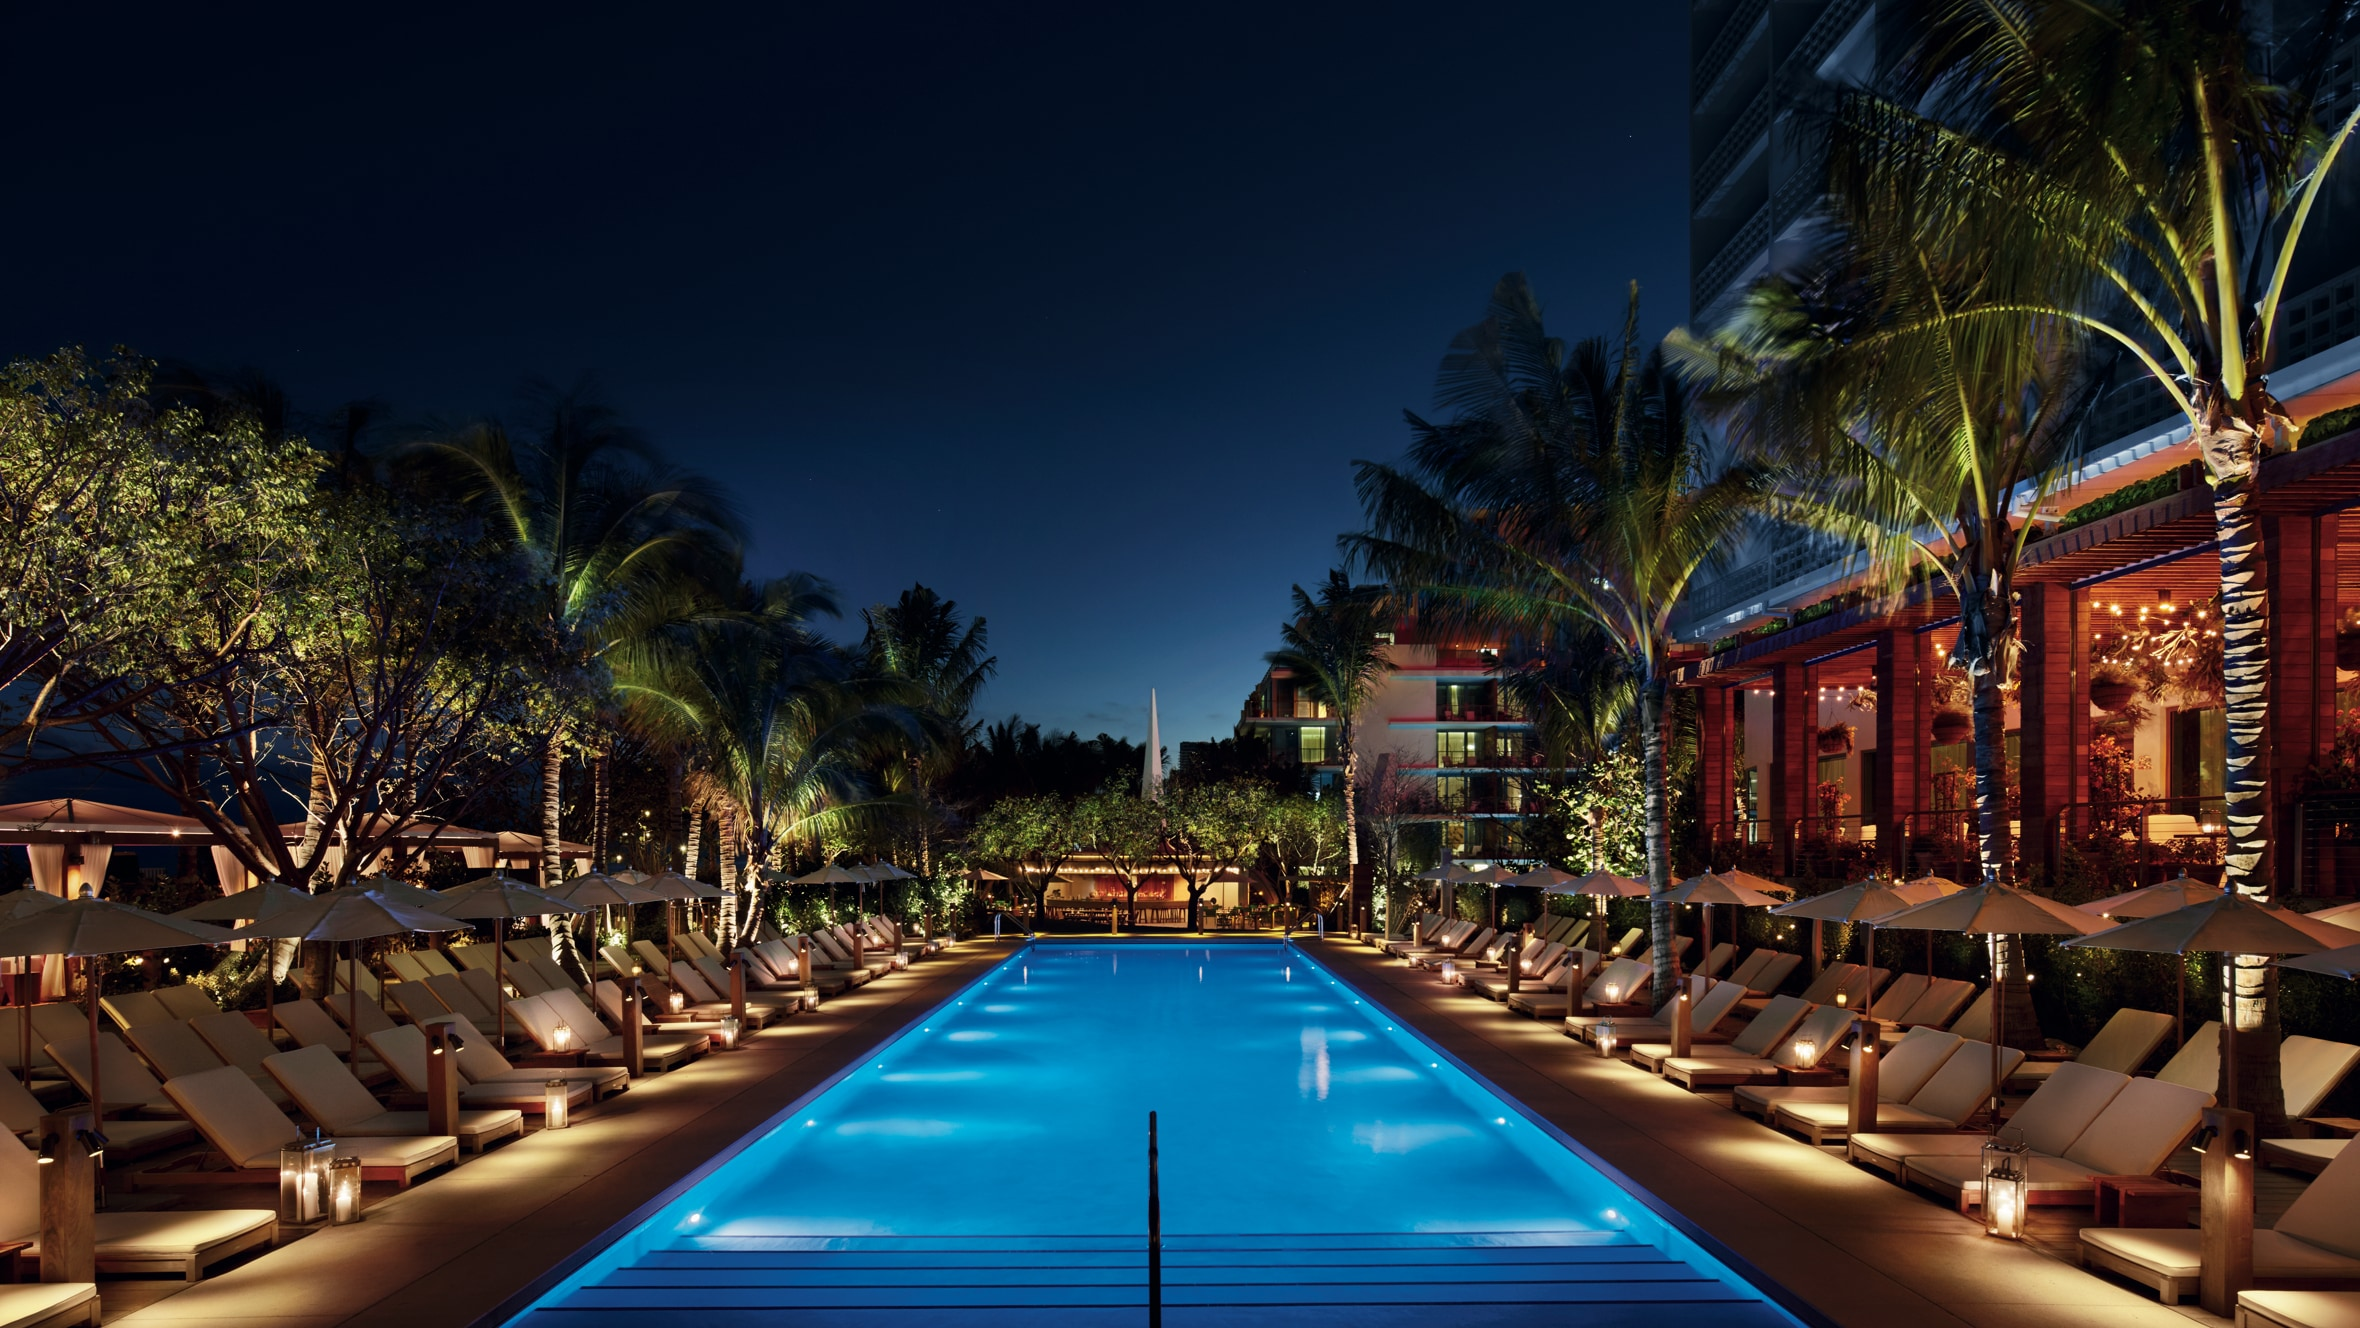 Pool lined with palm trees at night